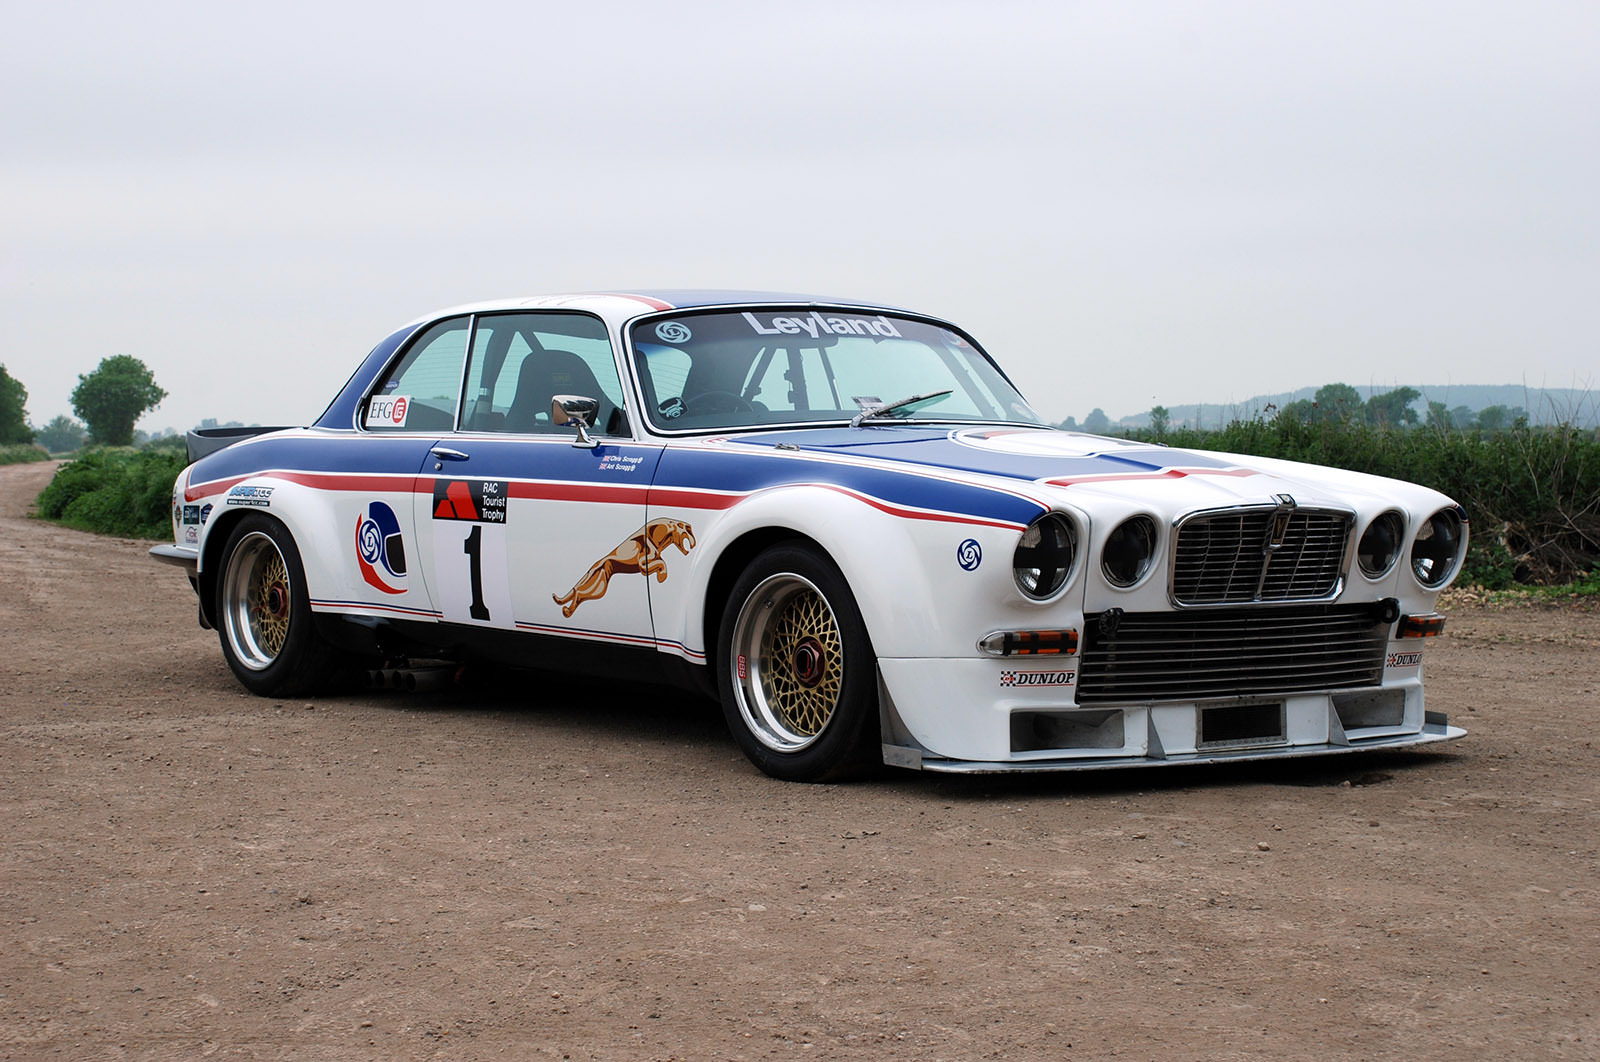 1976_Jaguar_Broadspeed_XJ12_Sayer Selection_Scragg_Wilkinson_20_web.jpg